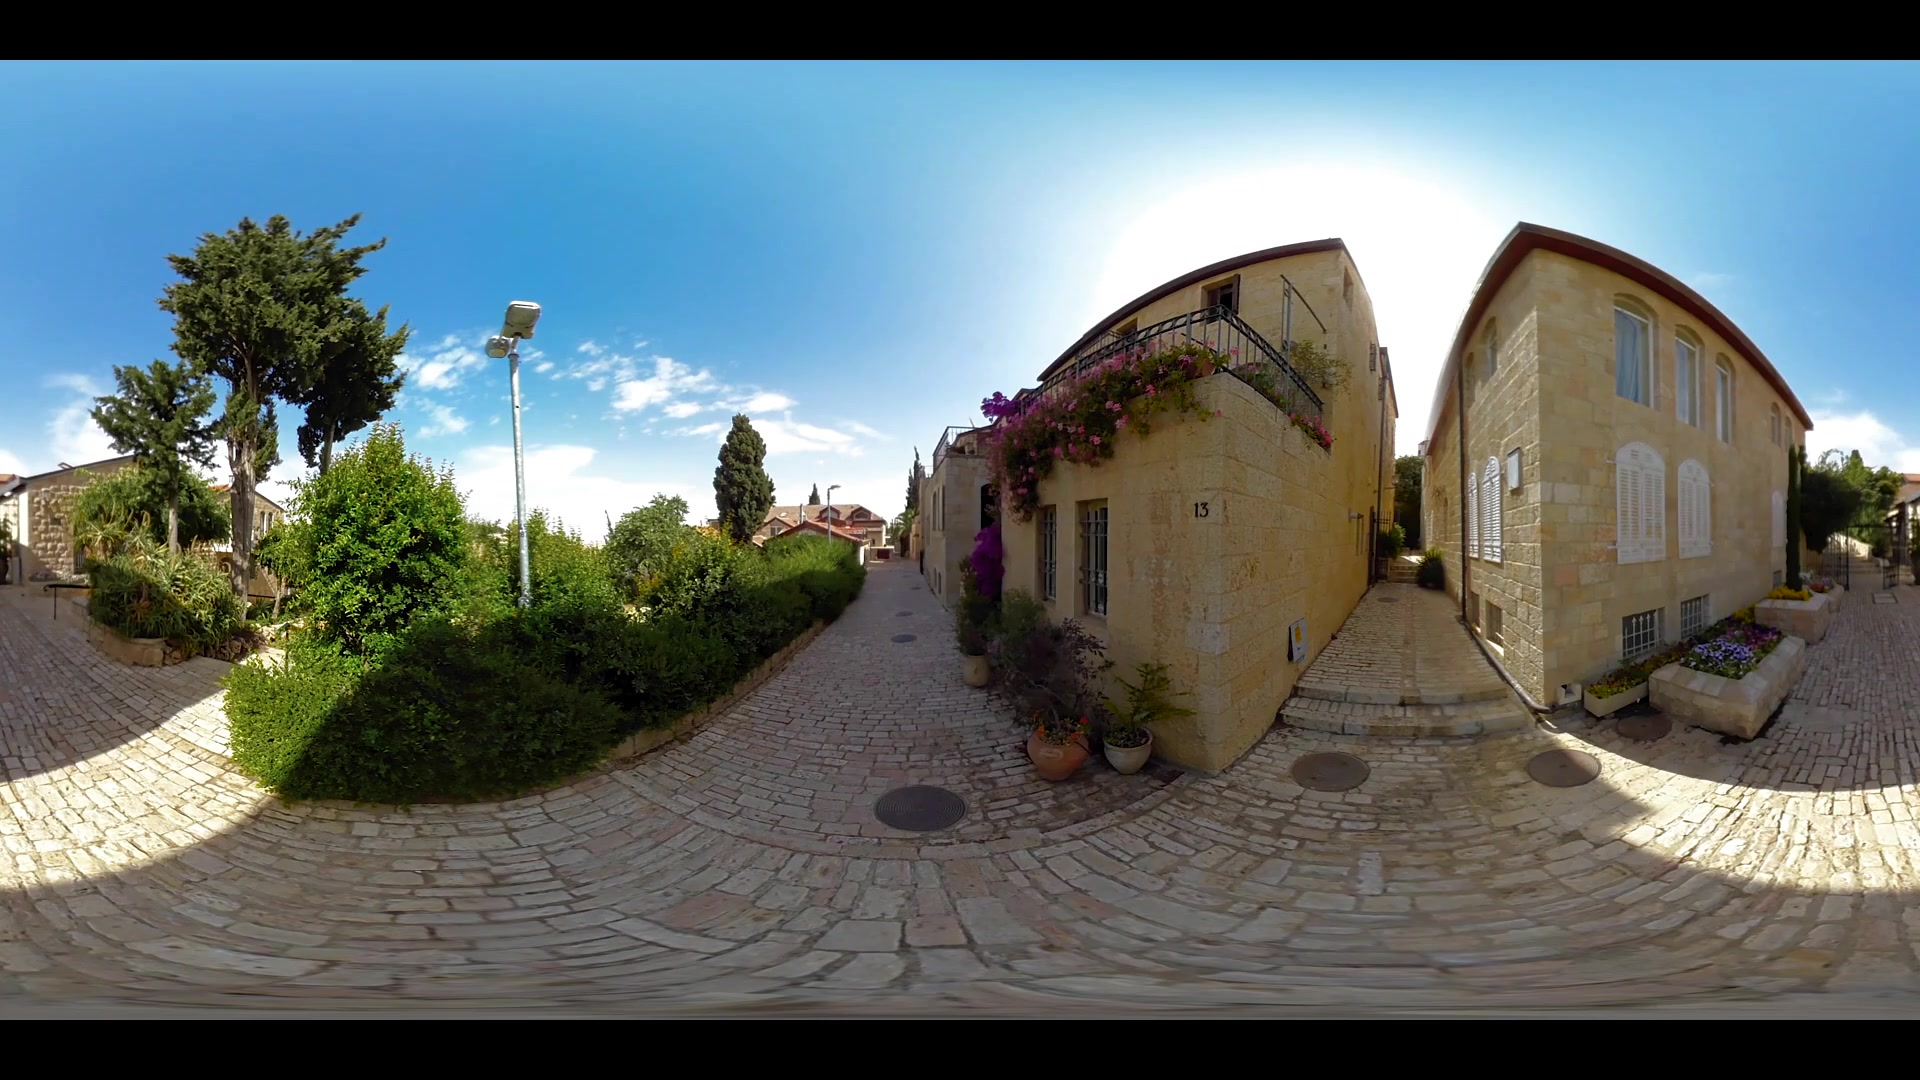 360VR video of street and houses of Mishkenot Shaananim neighborhood in Jerusalem, Israel. It was the first Jewish neighborhood built outside the walls of the Old City of Jerusalem in 1860.